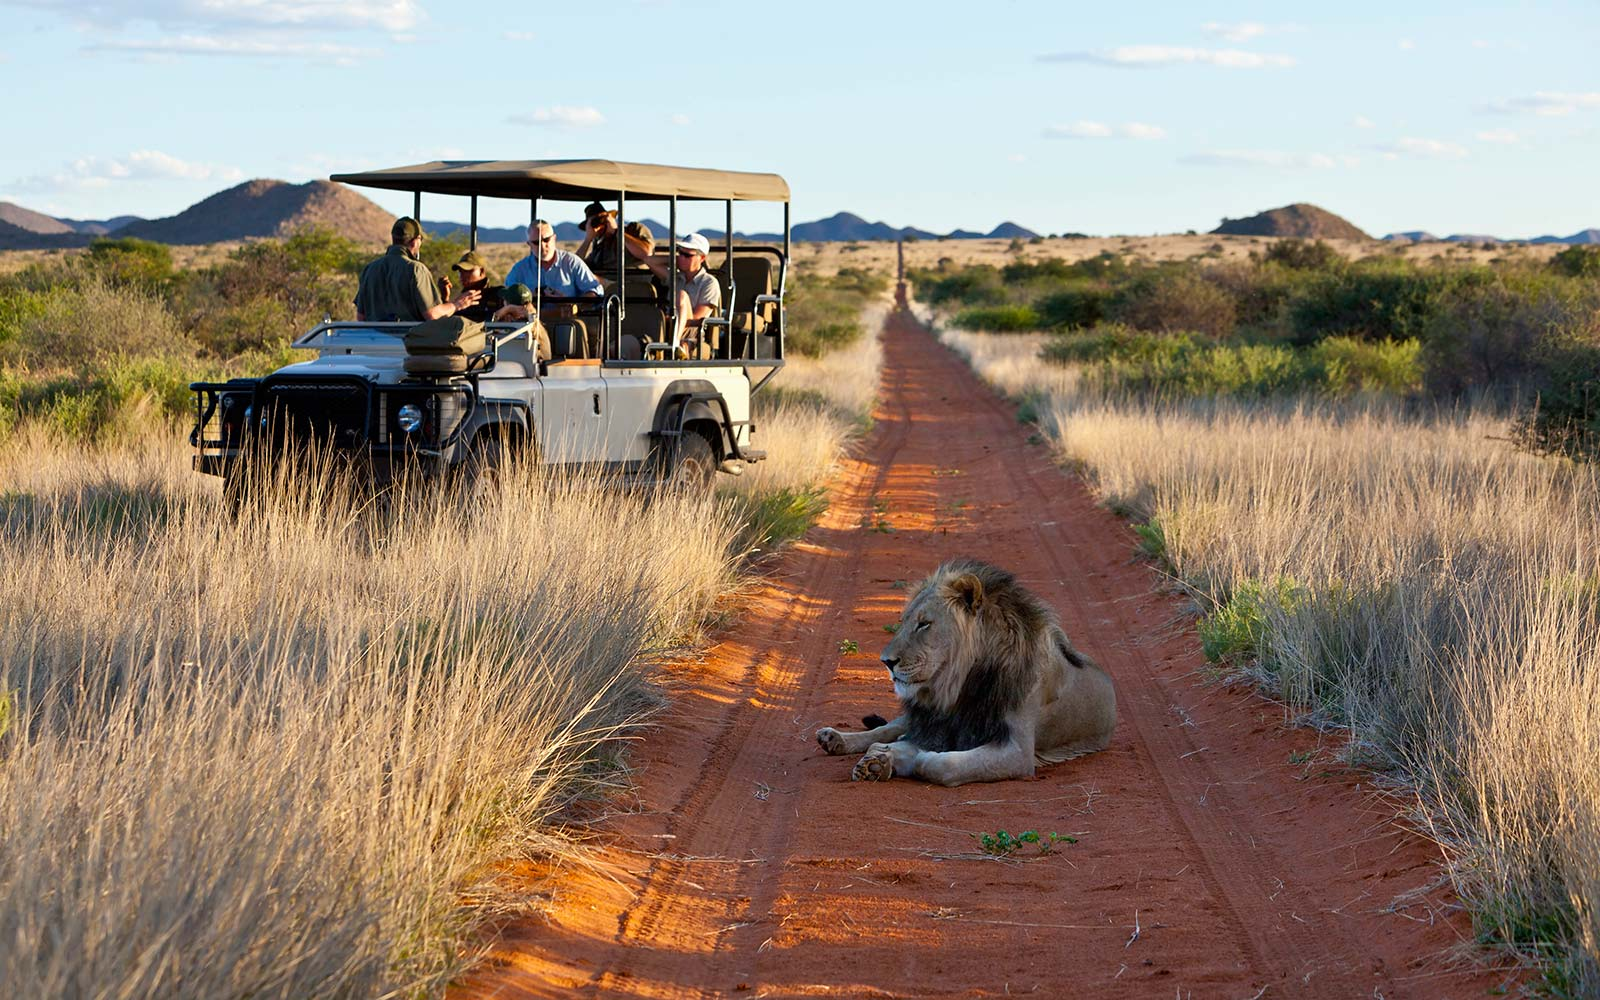 Lion Wildlife Kalahari South Africa Safari Costco Travel Excursion Expedition